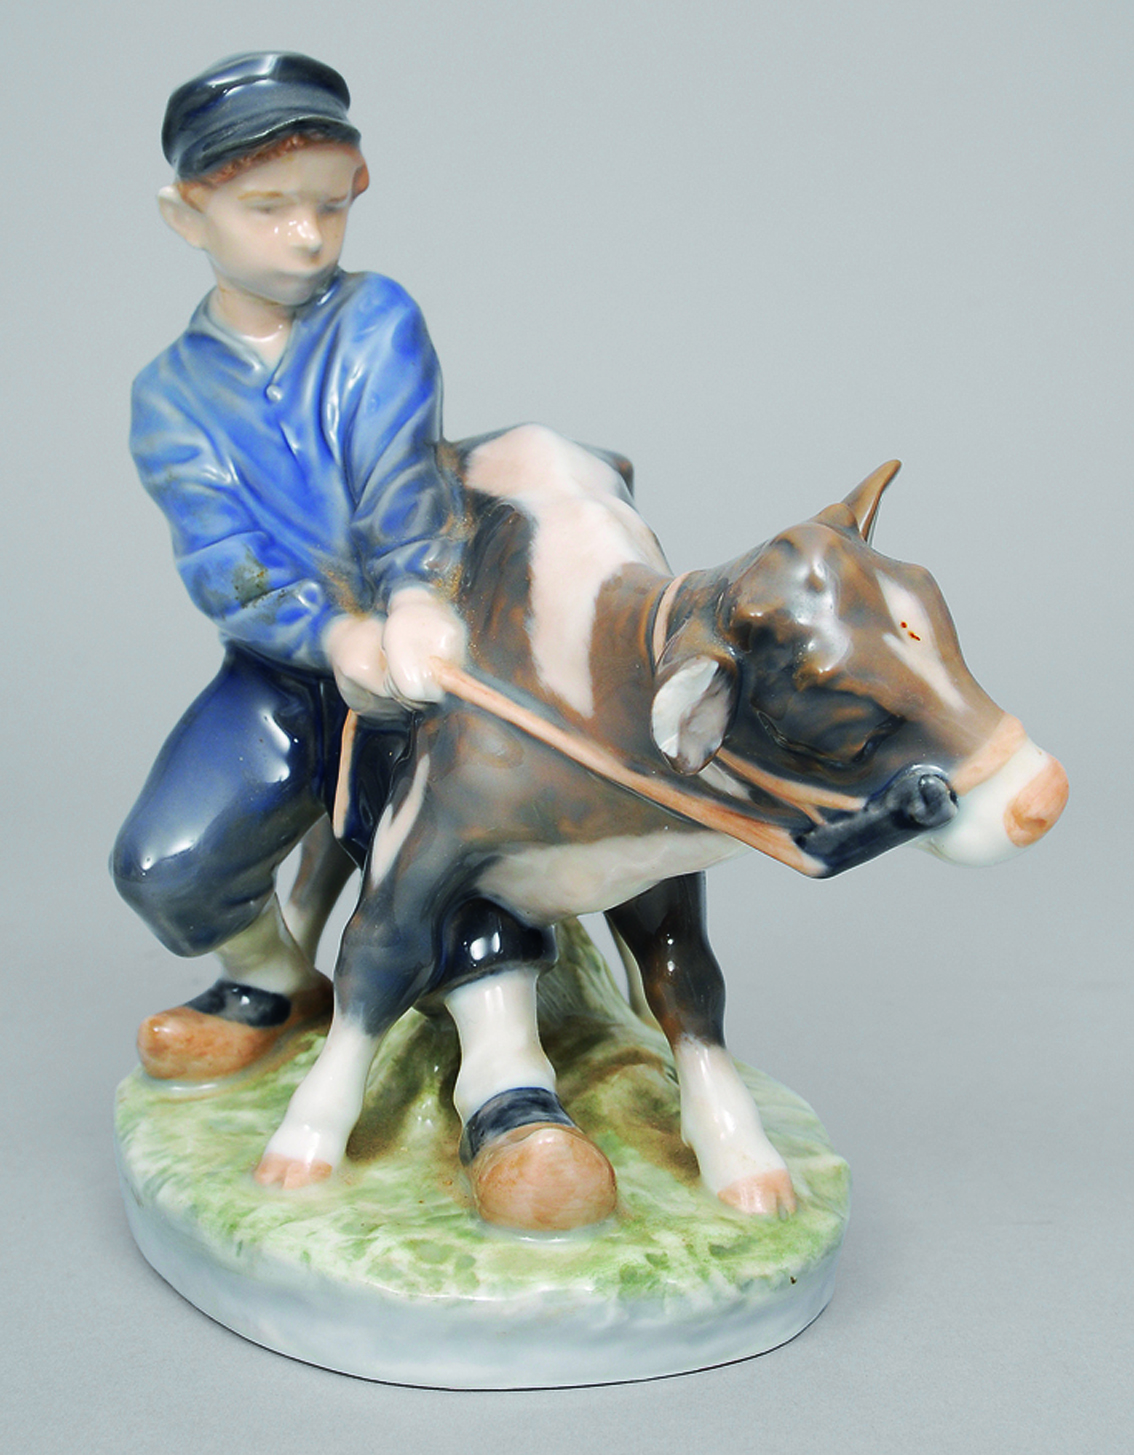 A figure of a boy with a cow